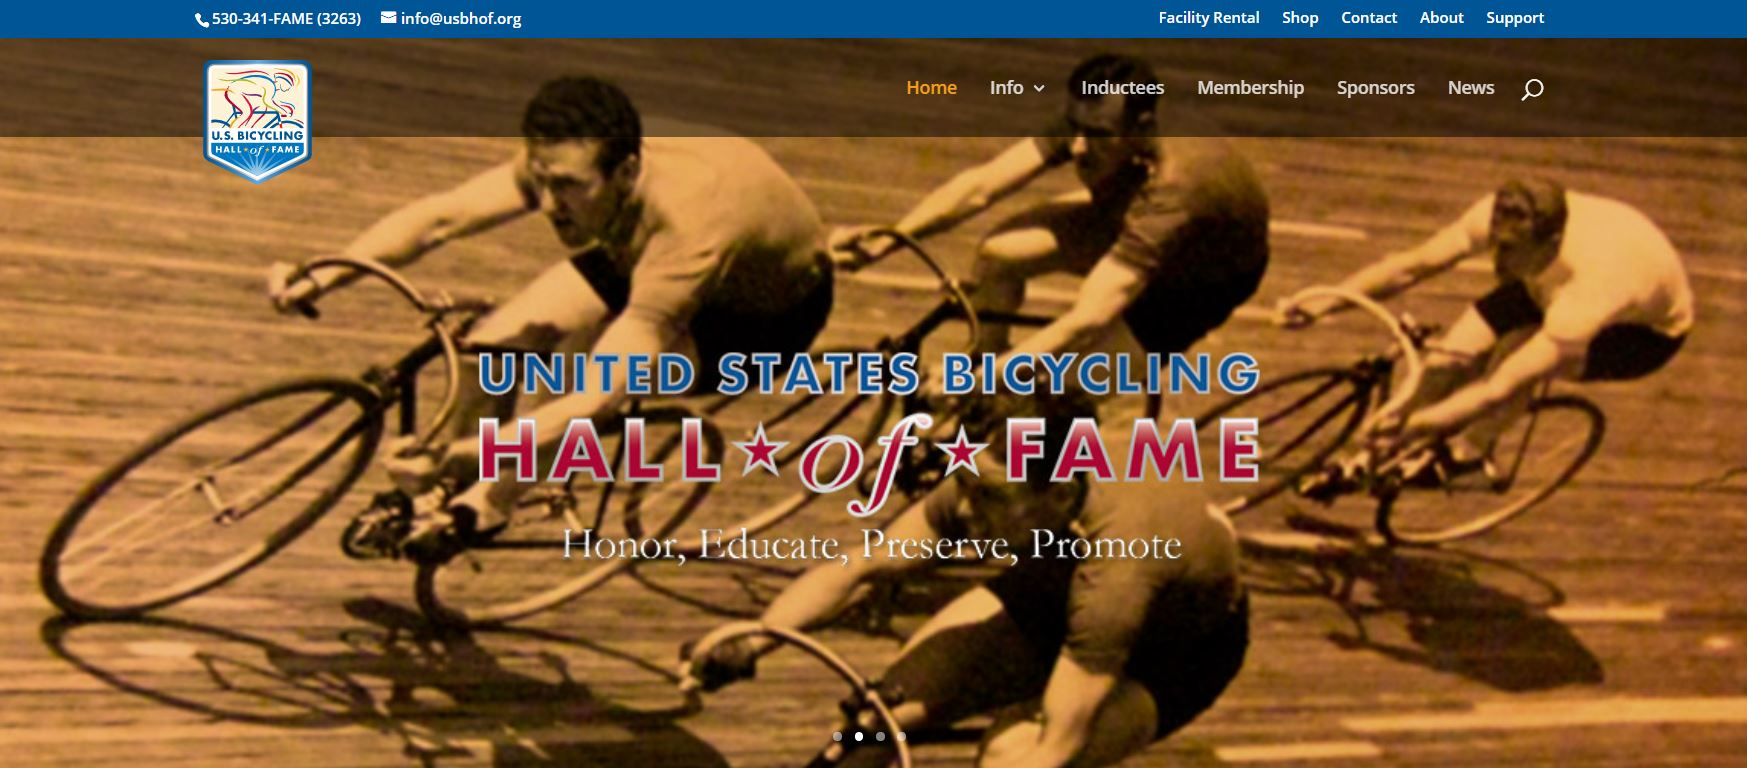 United States Bicycling Hall of Fame Homepage Hero Image